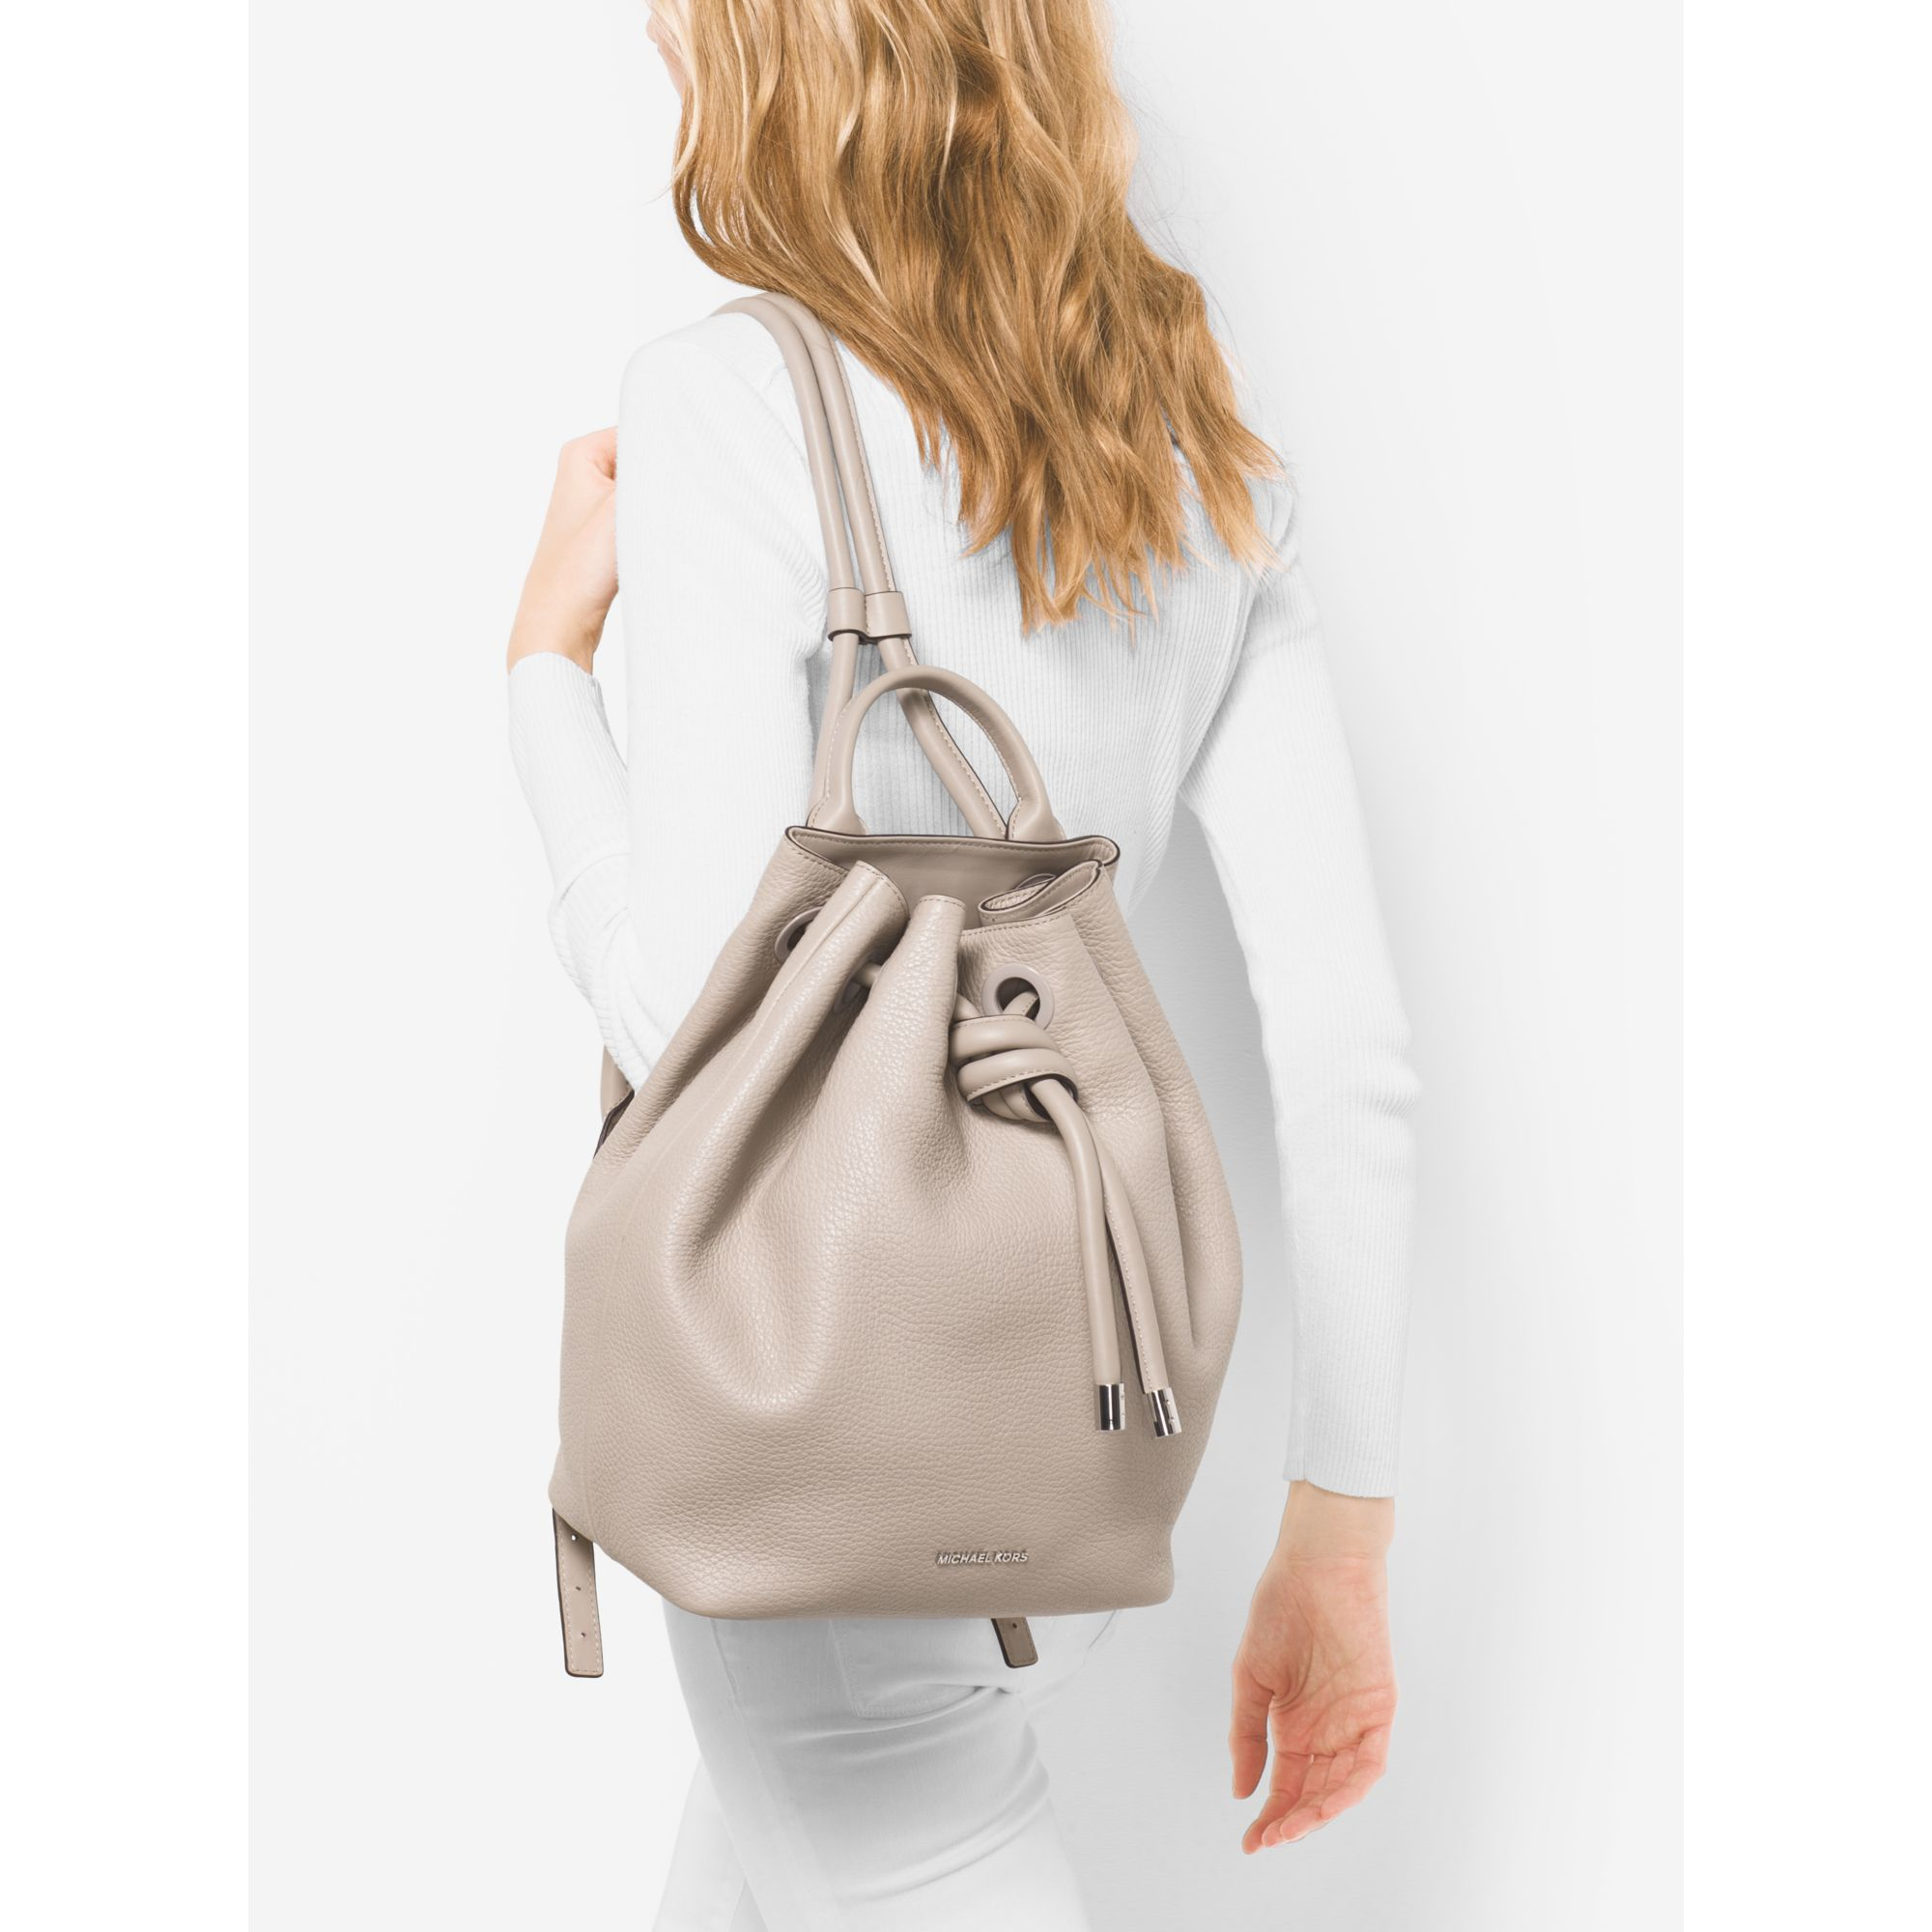 c445456b29ce ... discount lyst michael kors dalia large leather backpack in gray 82f34  5b4a2